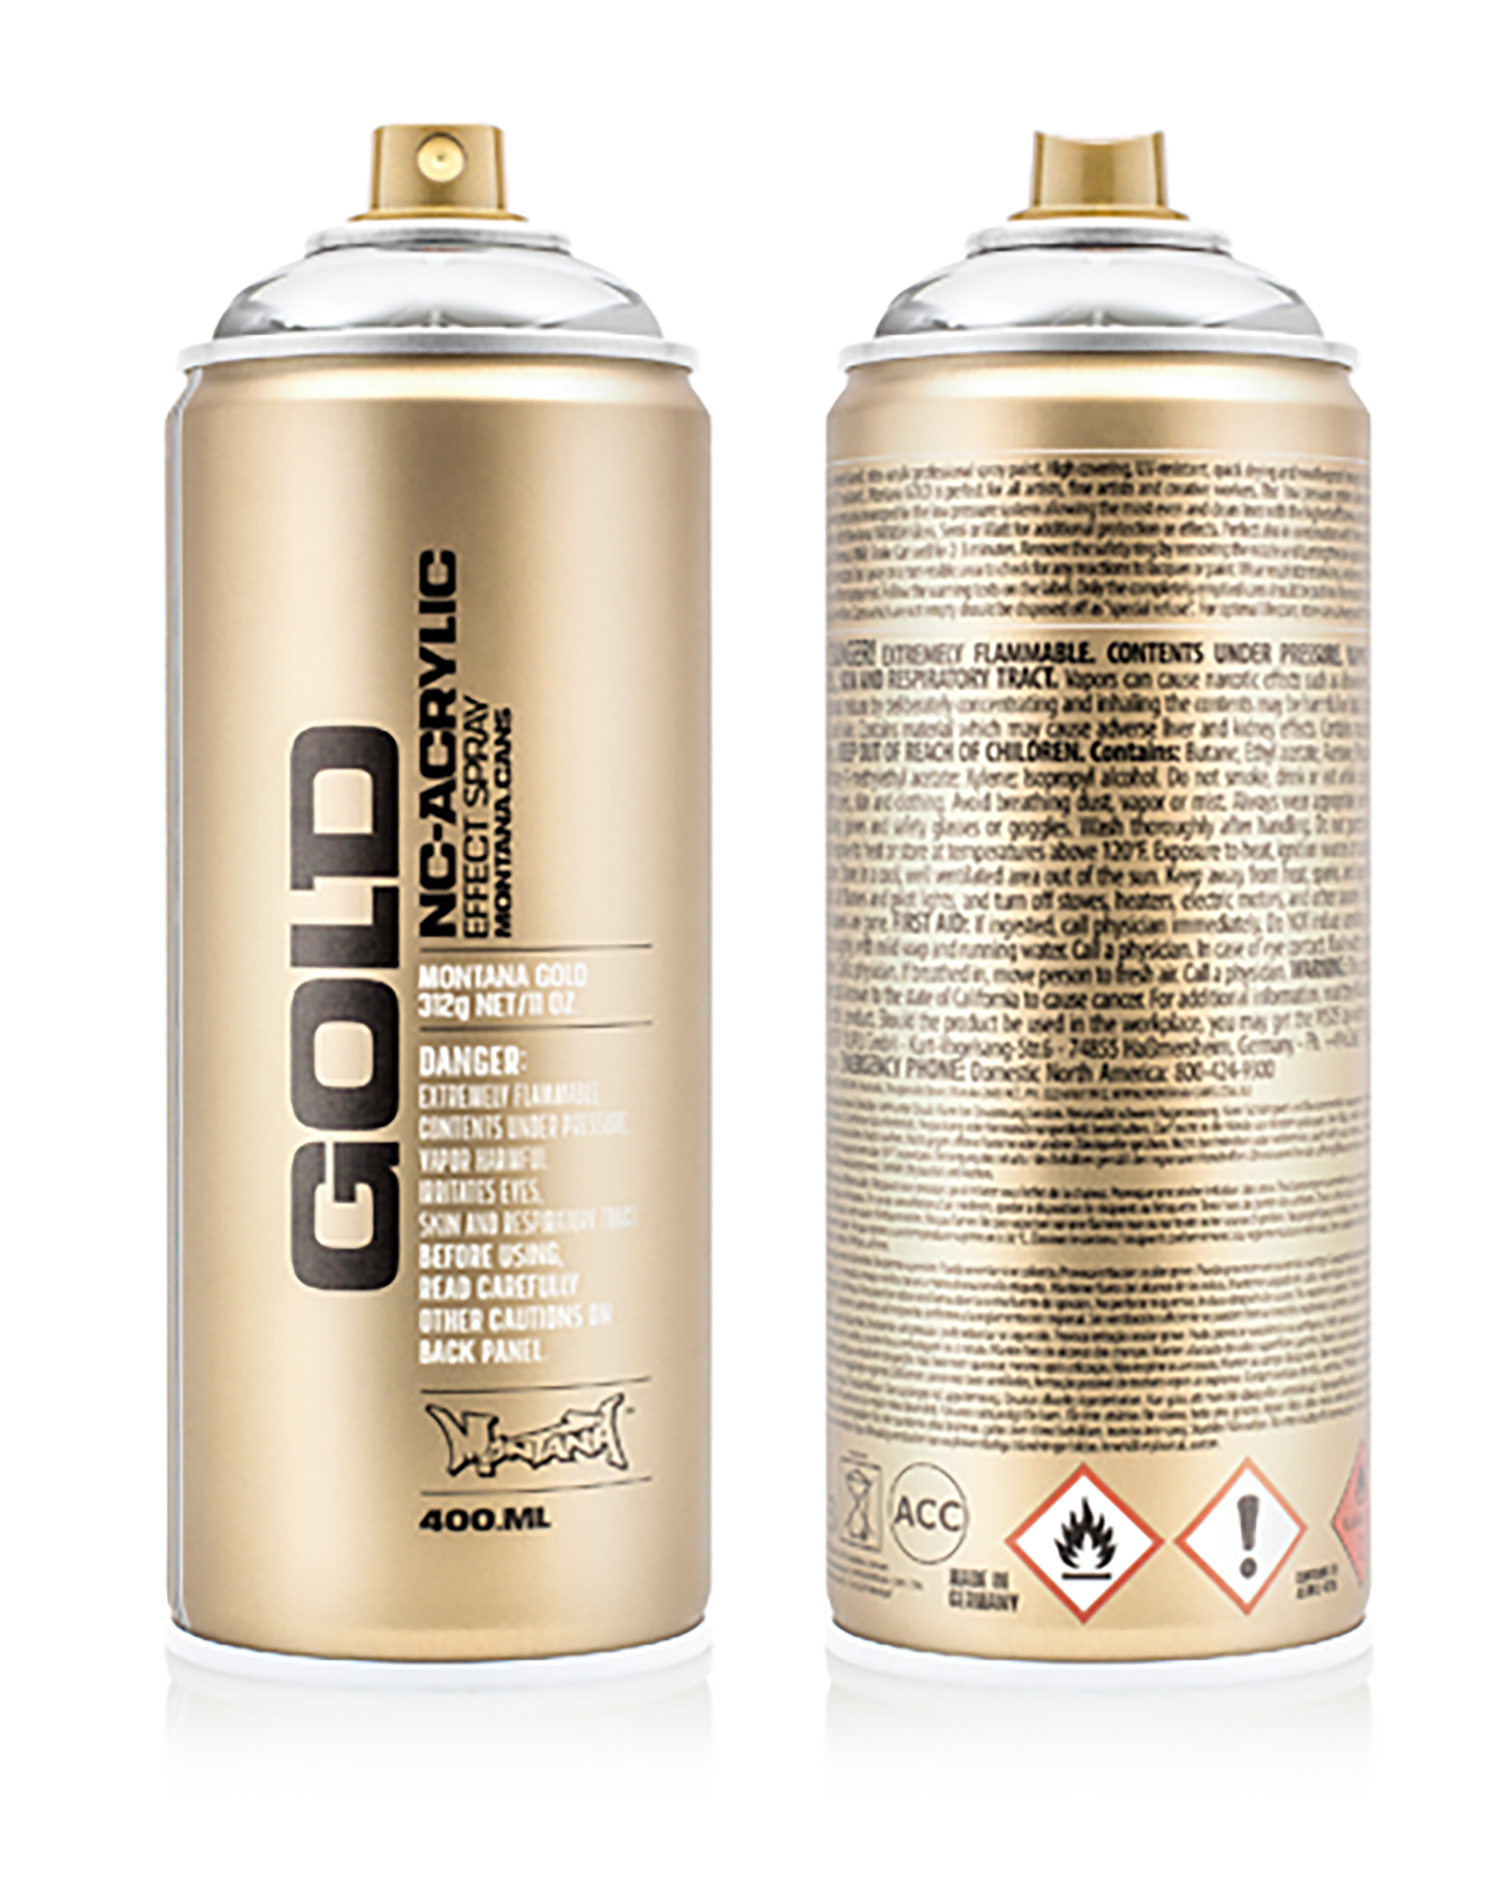 MONTANA-GOLD-SPRAY-400ML-M1000